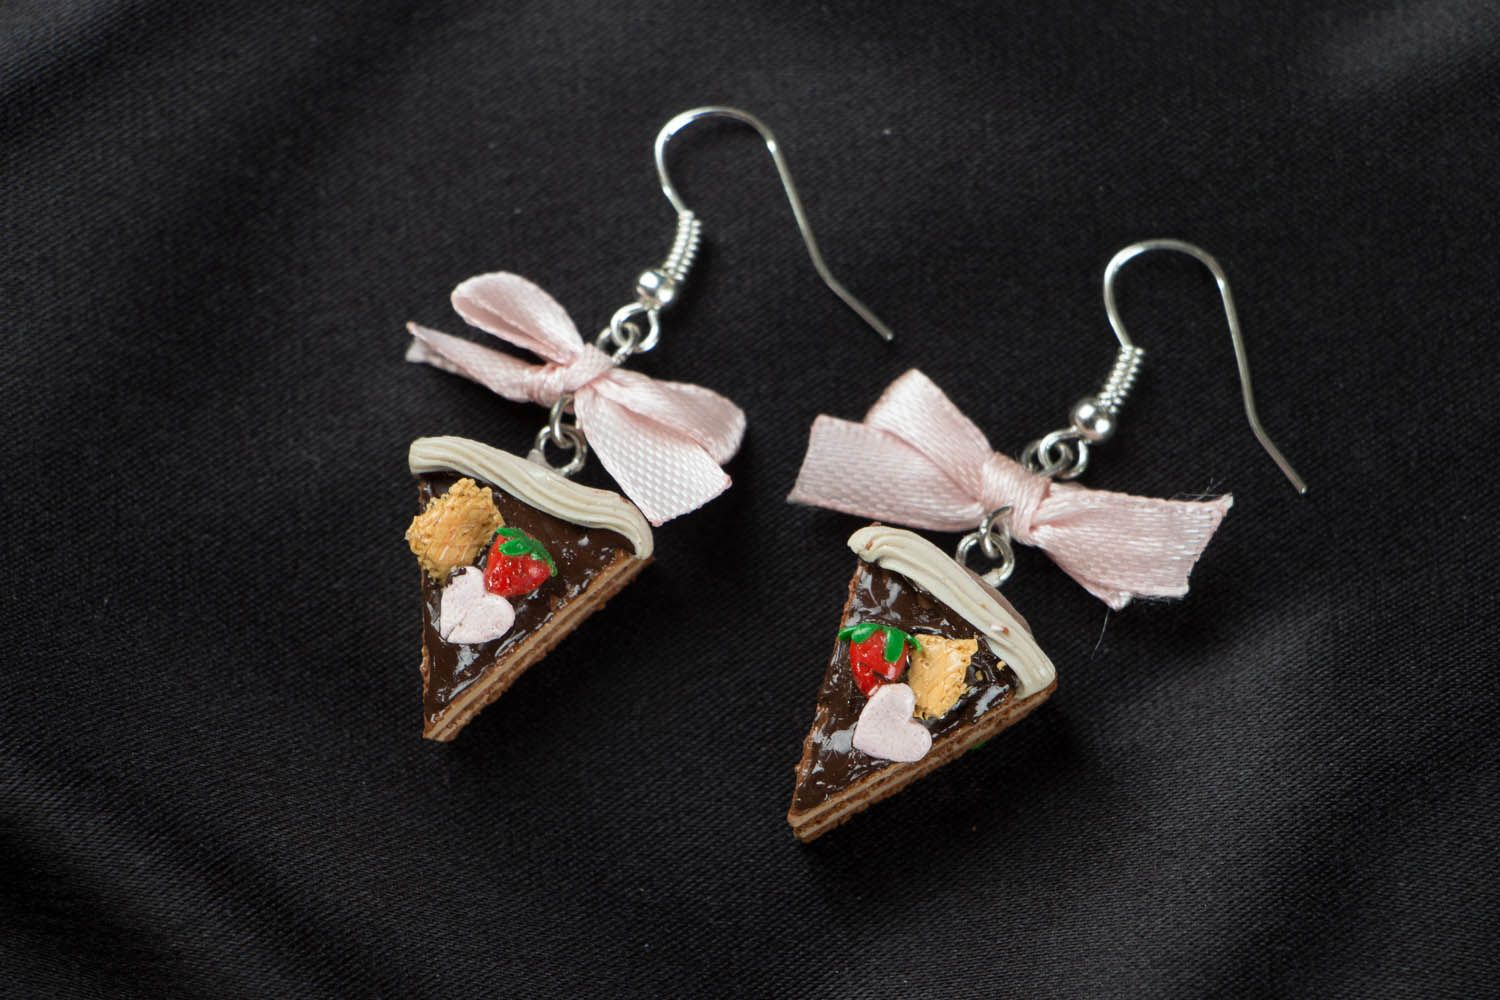 Earrings with charms in the shape of cakes photo 1